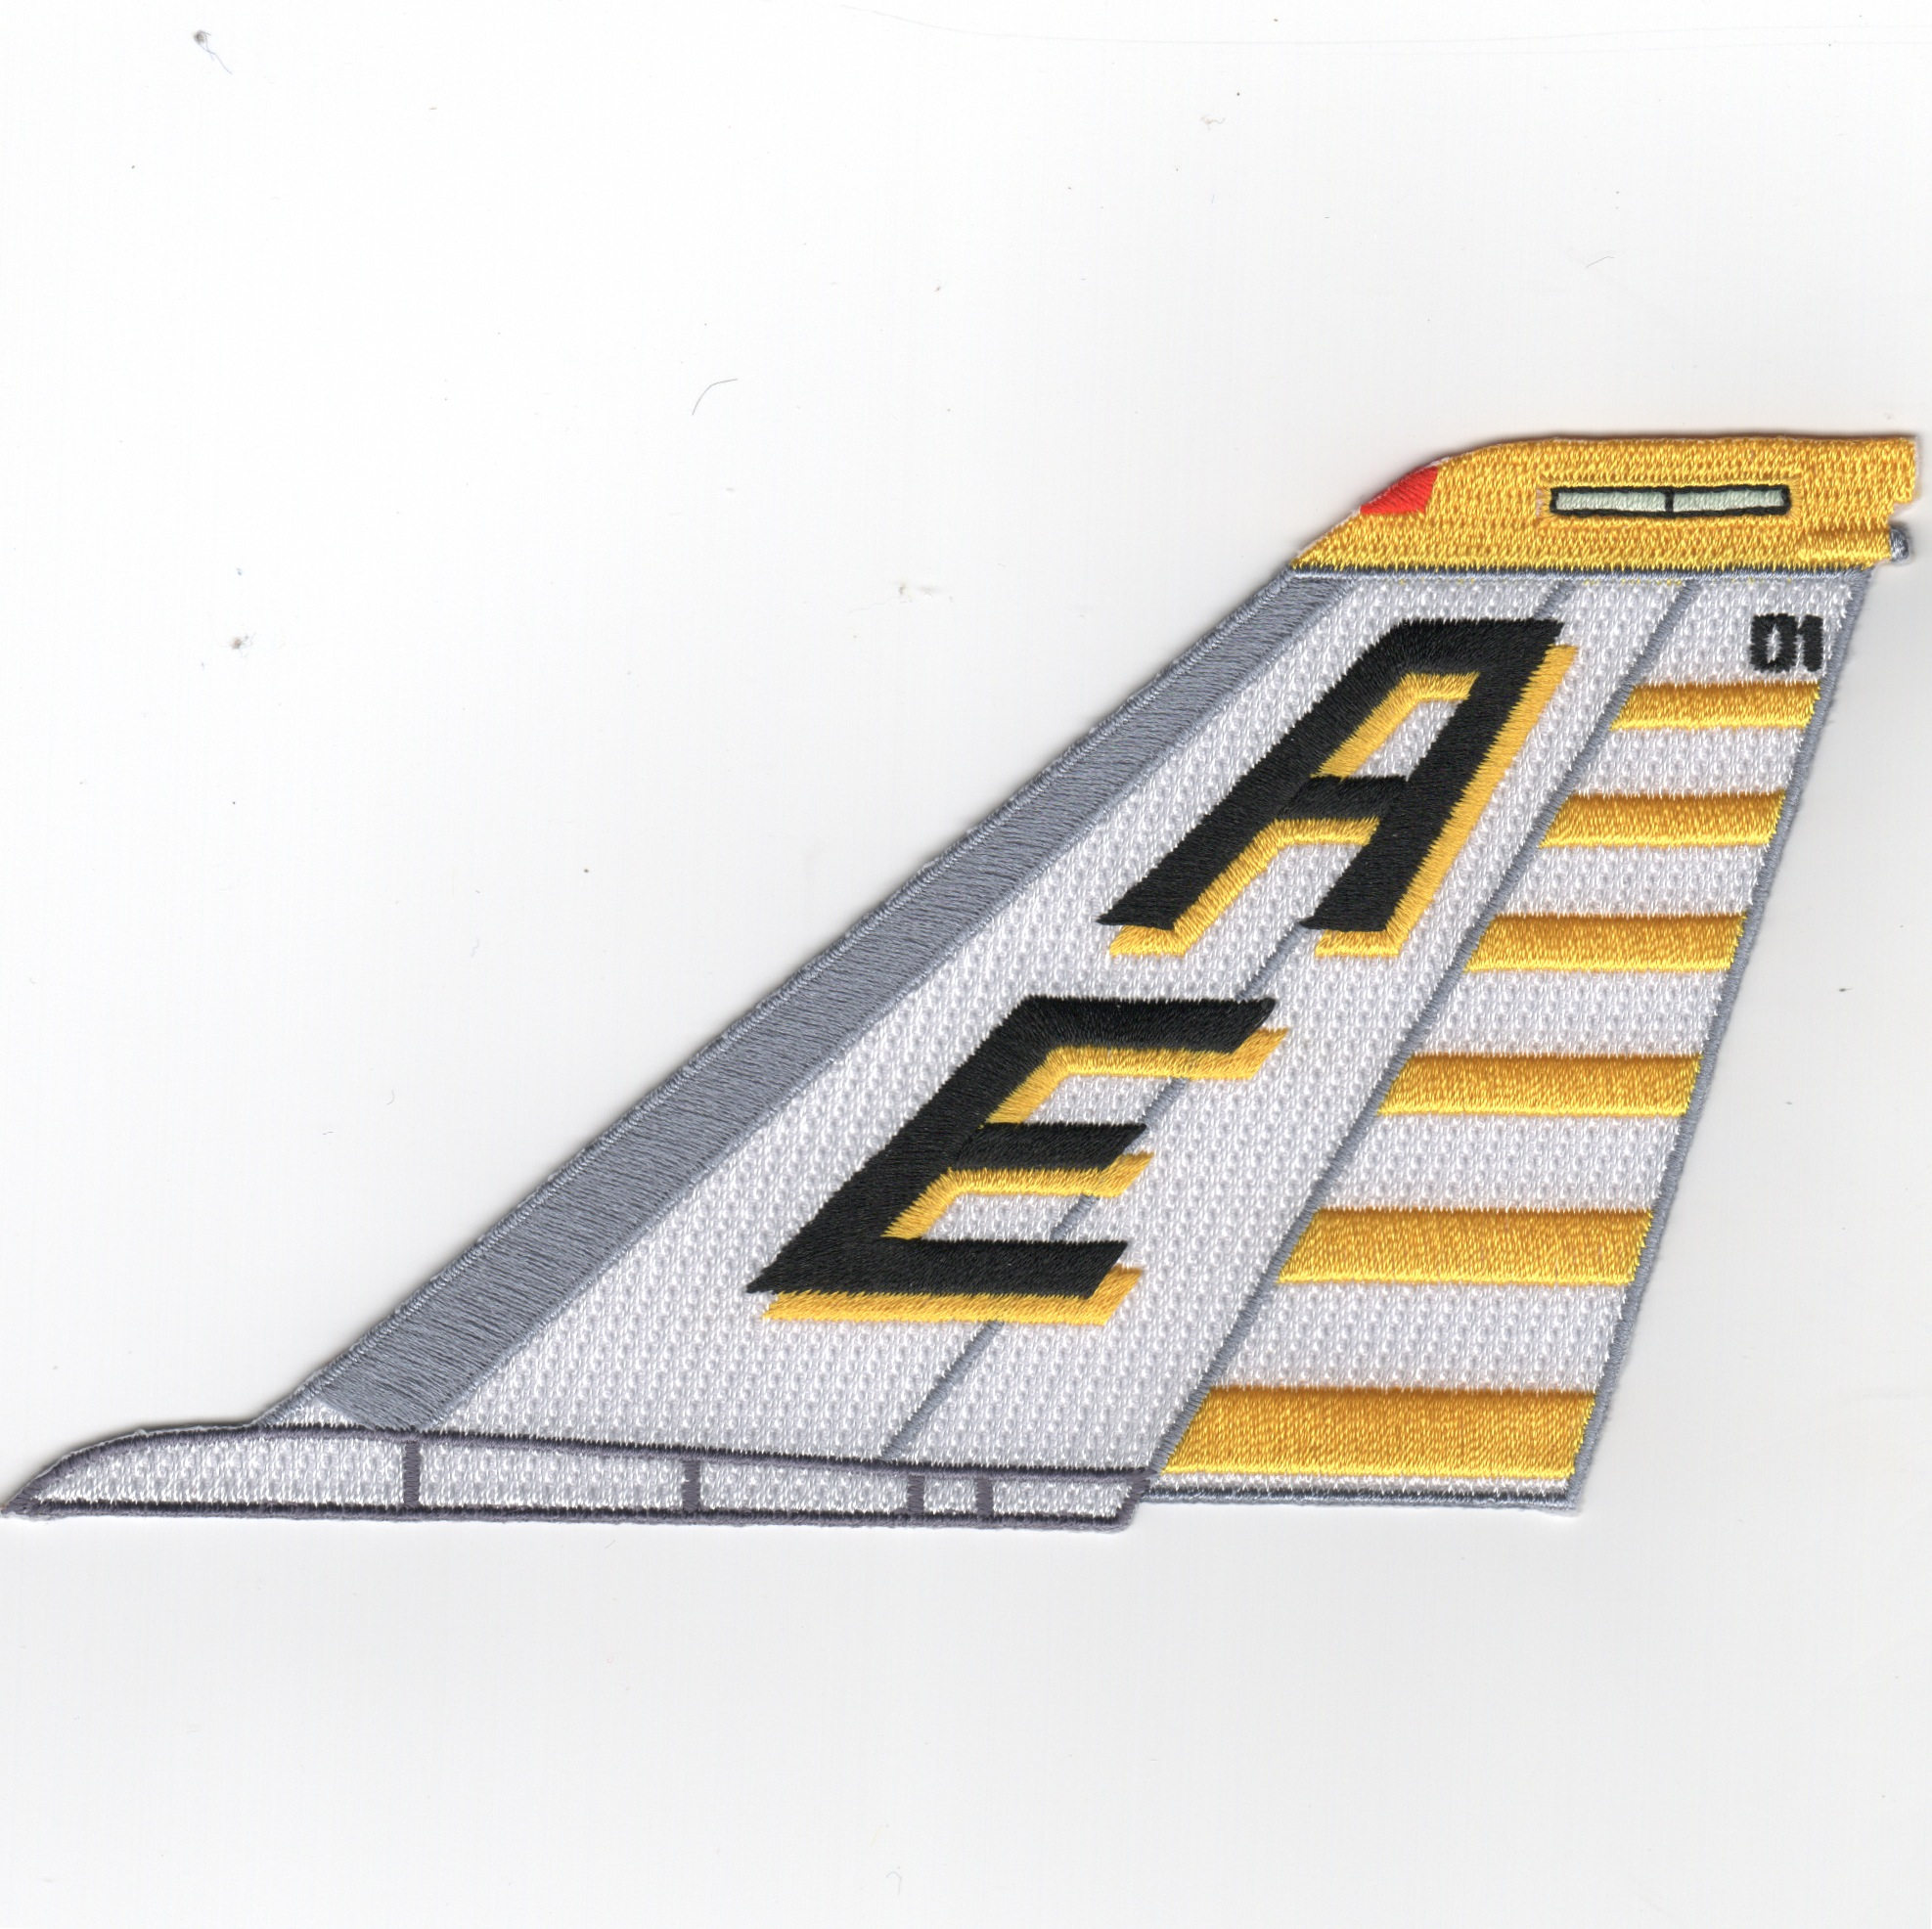 VF-142 F-14 Tailfin (No Text/Ylw-Wht)